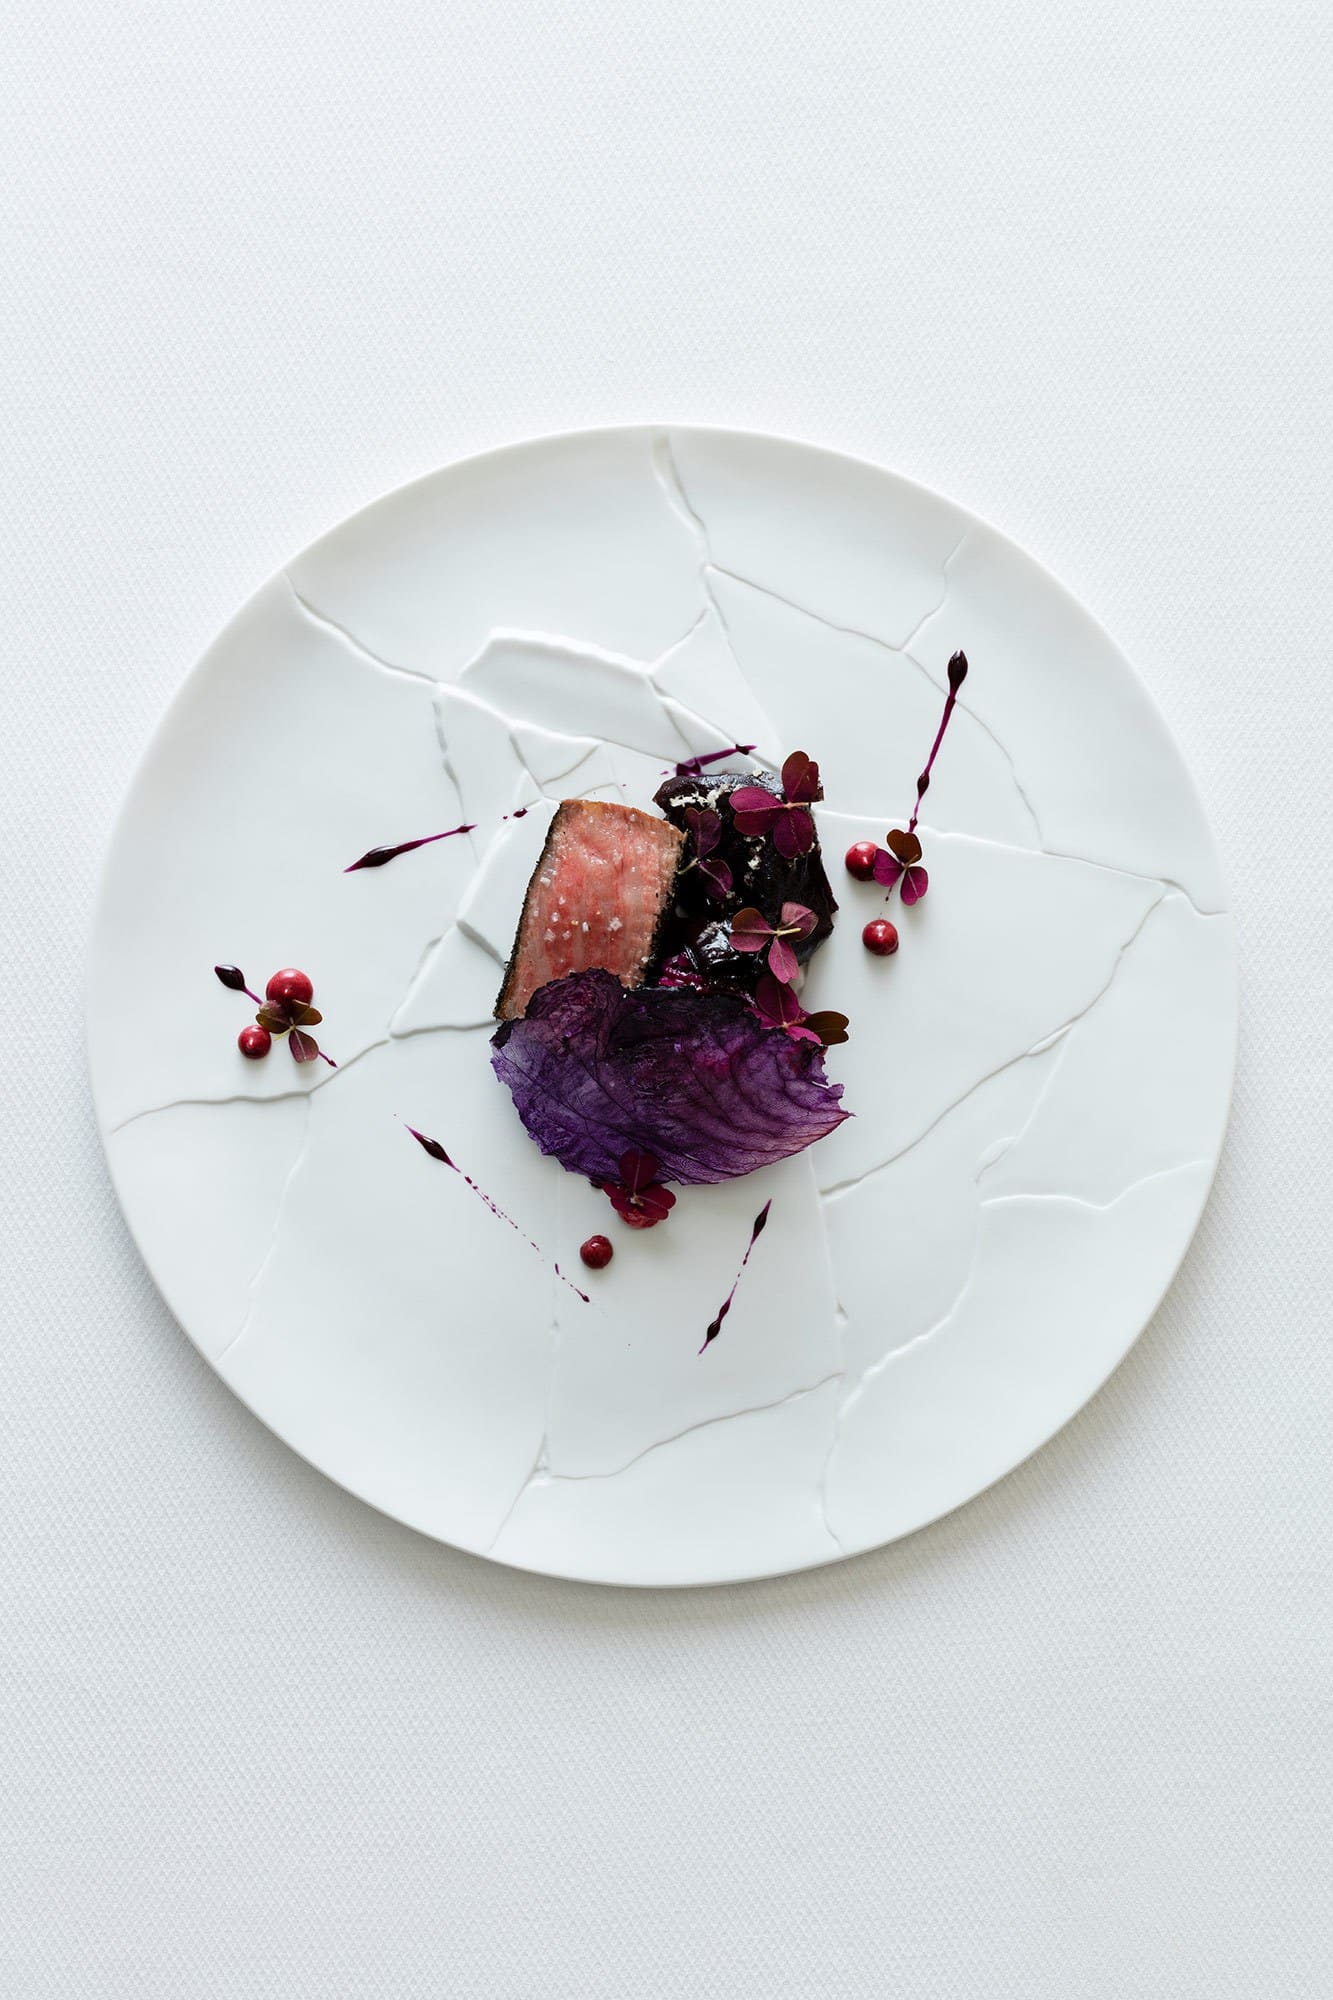 Richard Ekkebus: Miyazaki wagyu beef, strip loin, barbecued with dulse & red cabbage slaw, oxalis, horseradish & pepper berry emulsion